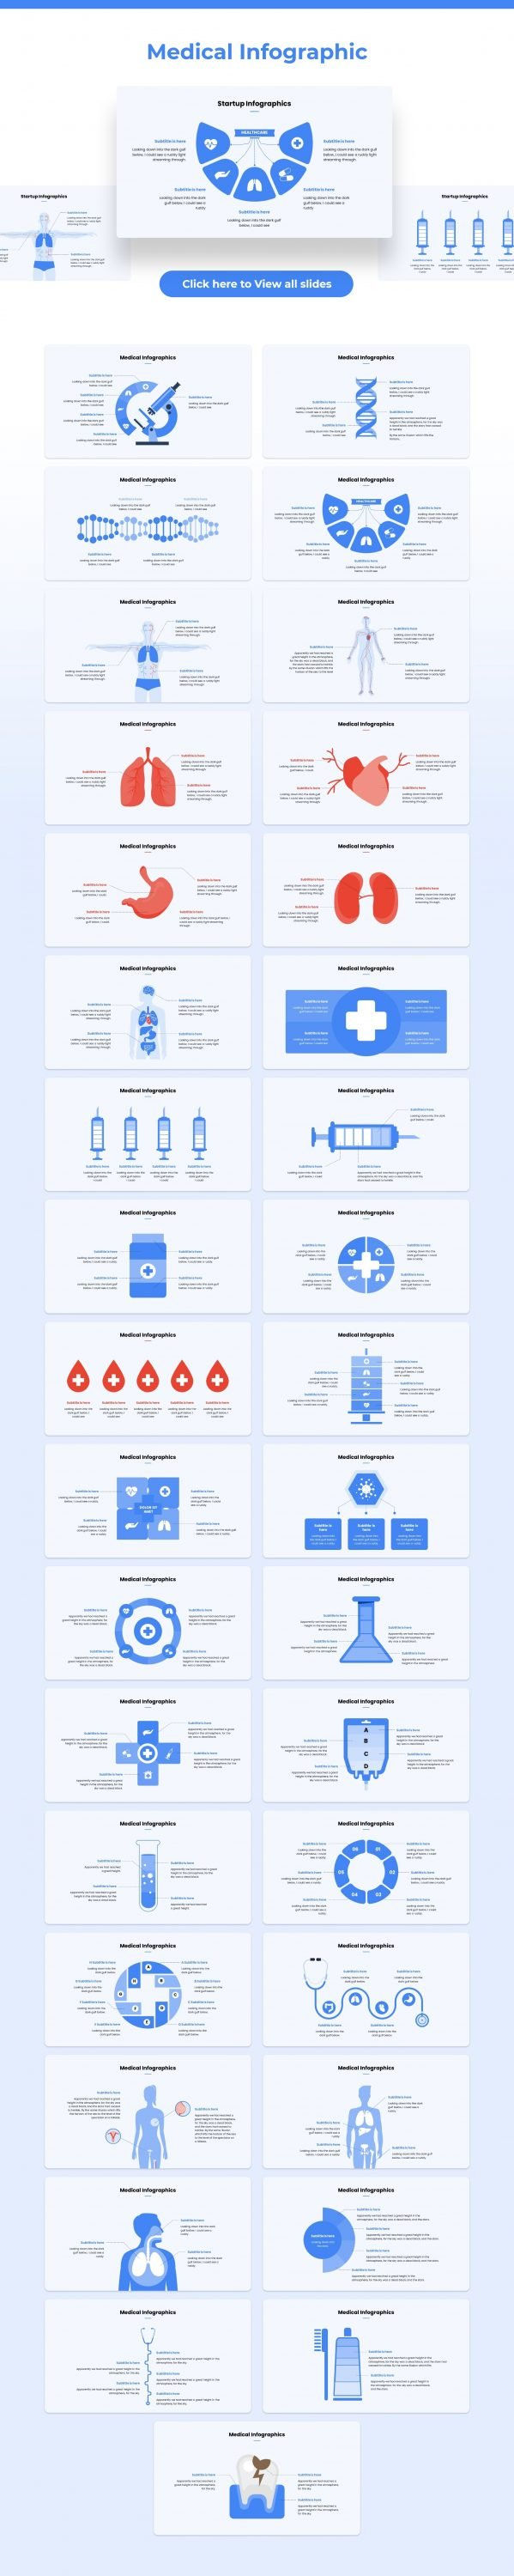 The last one - medical infographic in blue. This infographic features illustrative thematic drawings and elements.